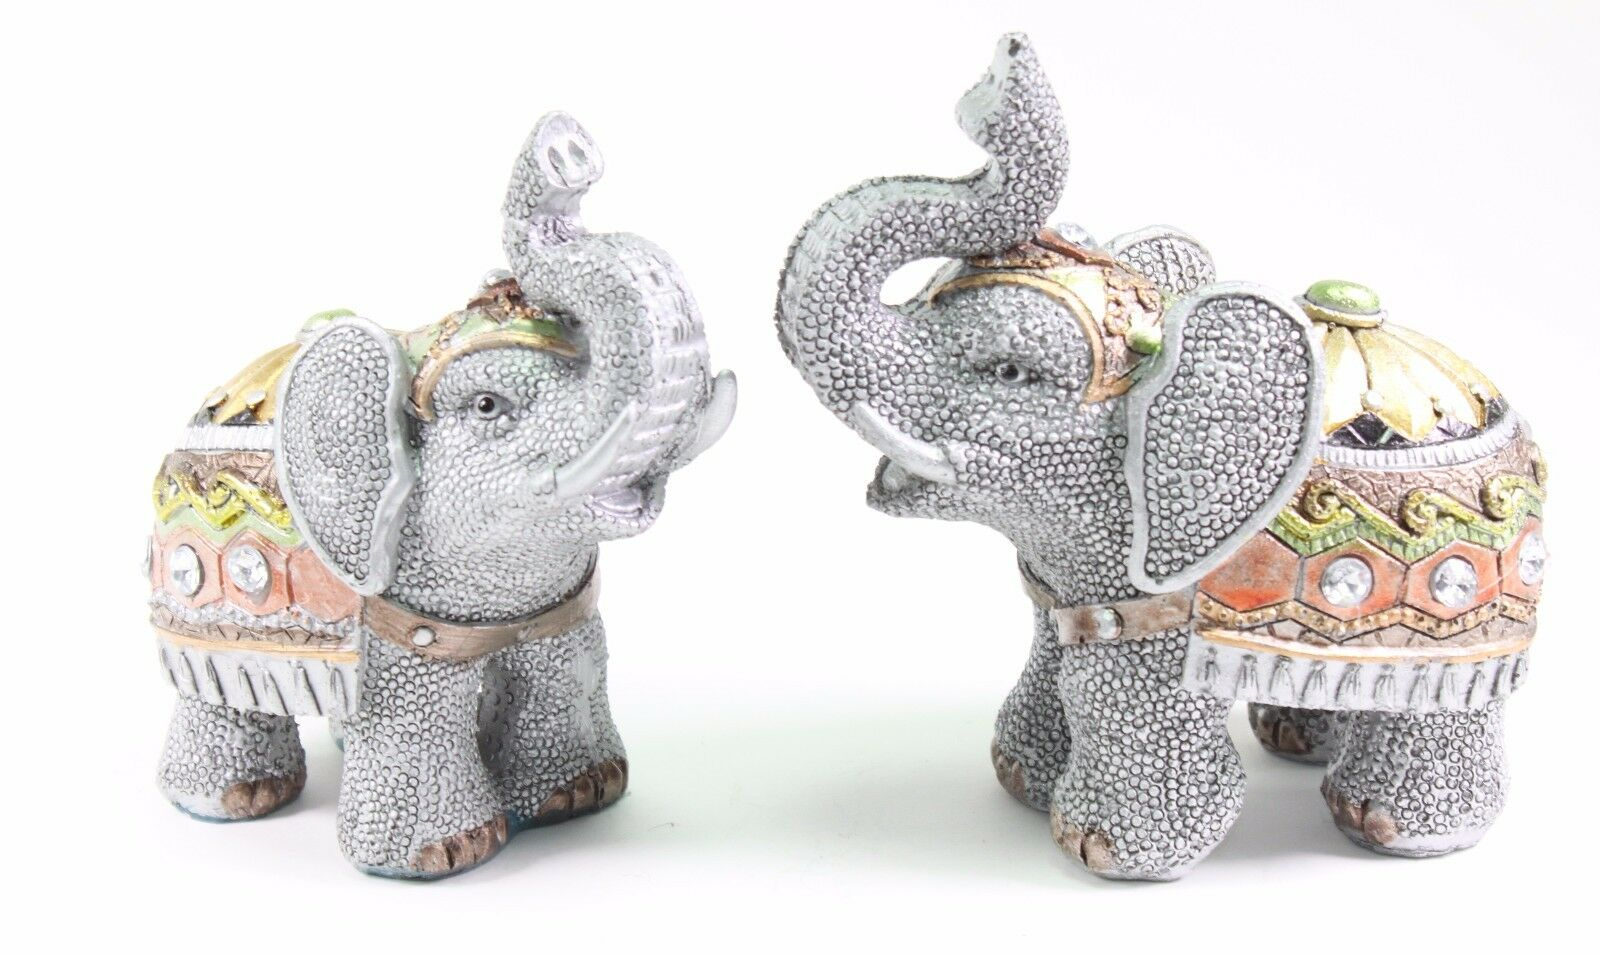 Set of 2 feng shui gray elephants trunk statue lucky figurine gift home decor ebay Colorful elephant home decor